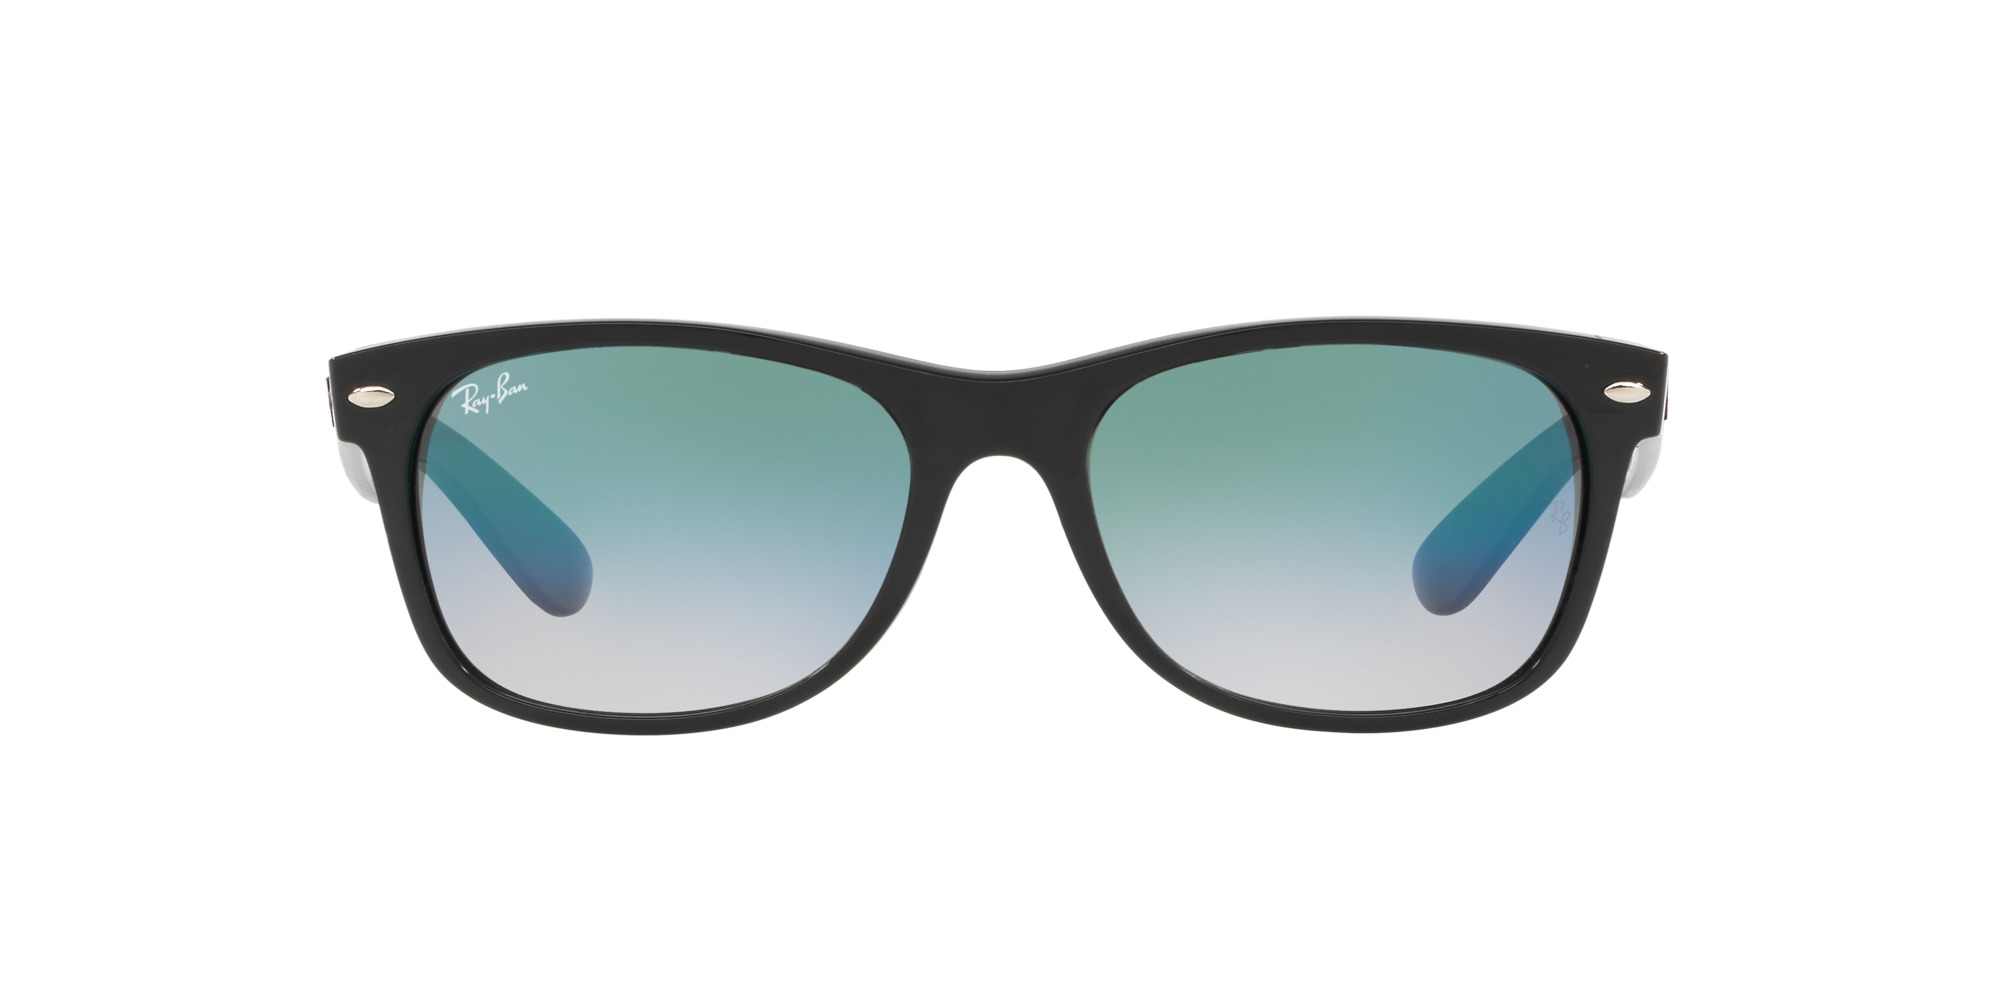 RAY-BAN NEW WAYFARER RB 2132 901/3A-360